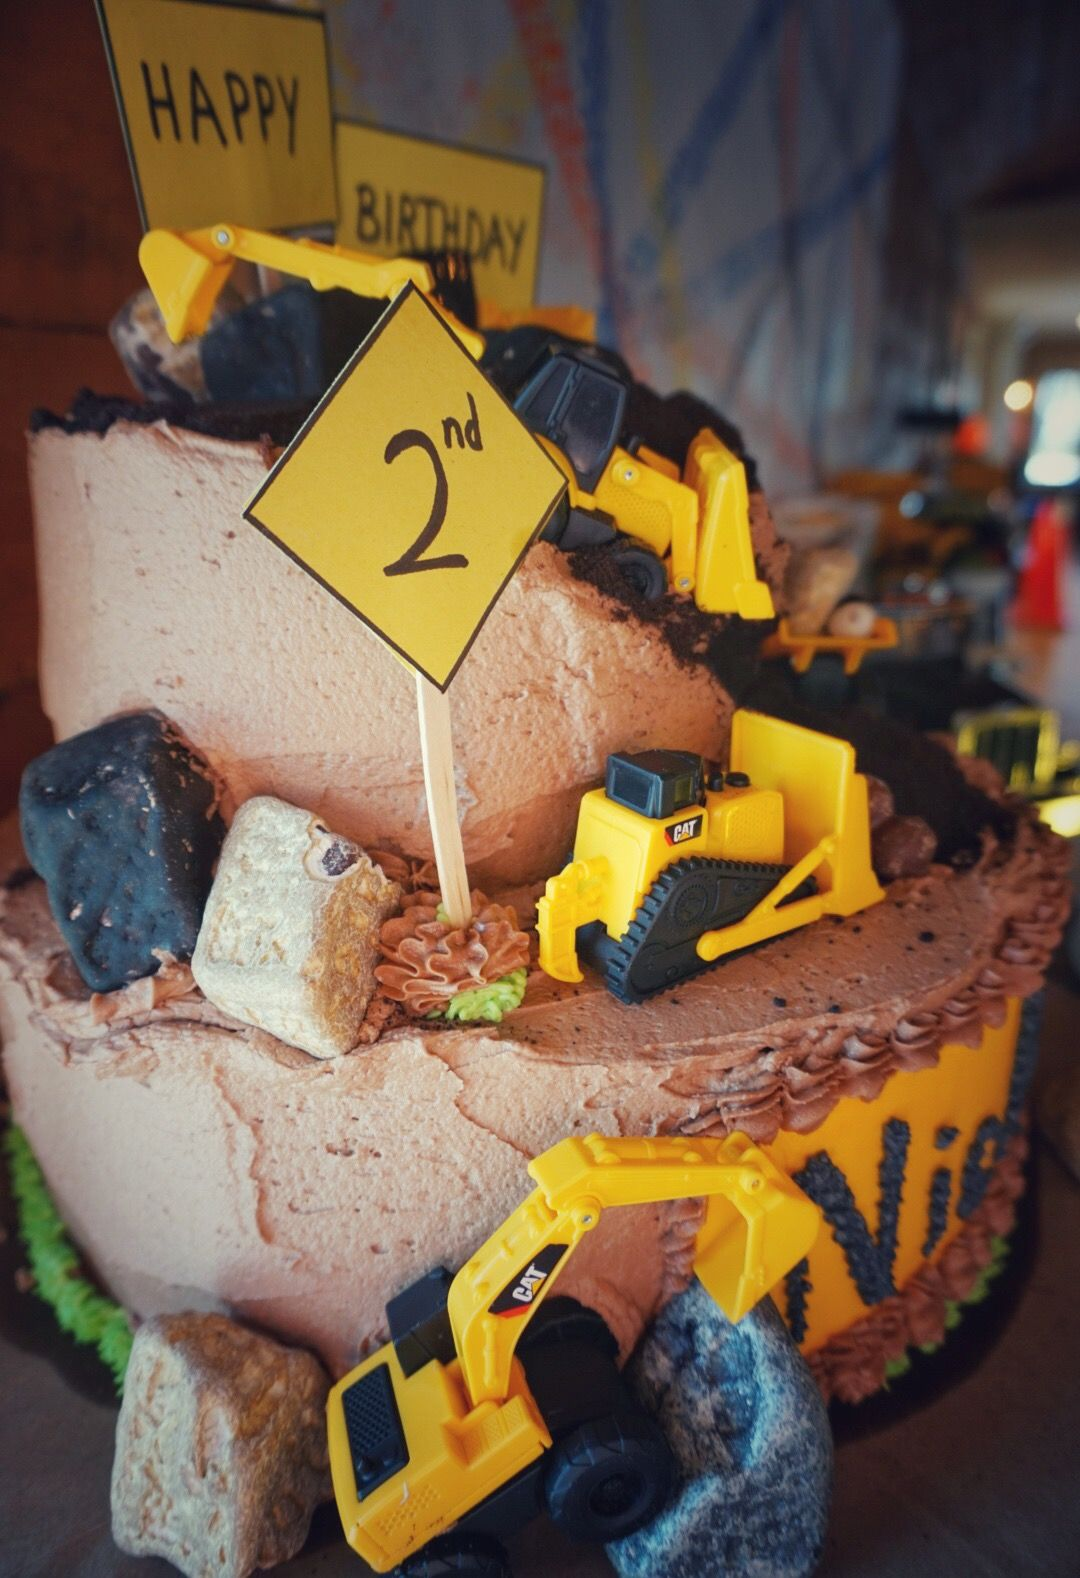 Construction Theme 2nd Birthday Party Dump Truck Semi Backhoe Loader Cake Candy Rocks Cookie Crumb Dirt